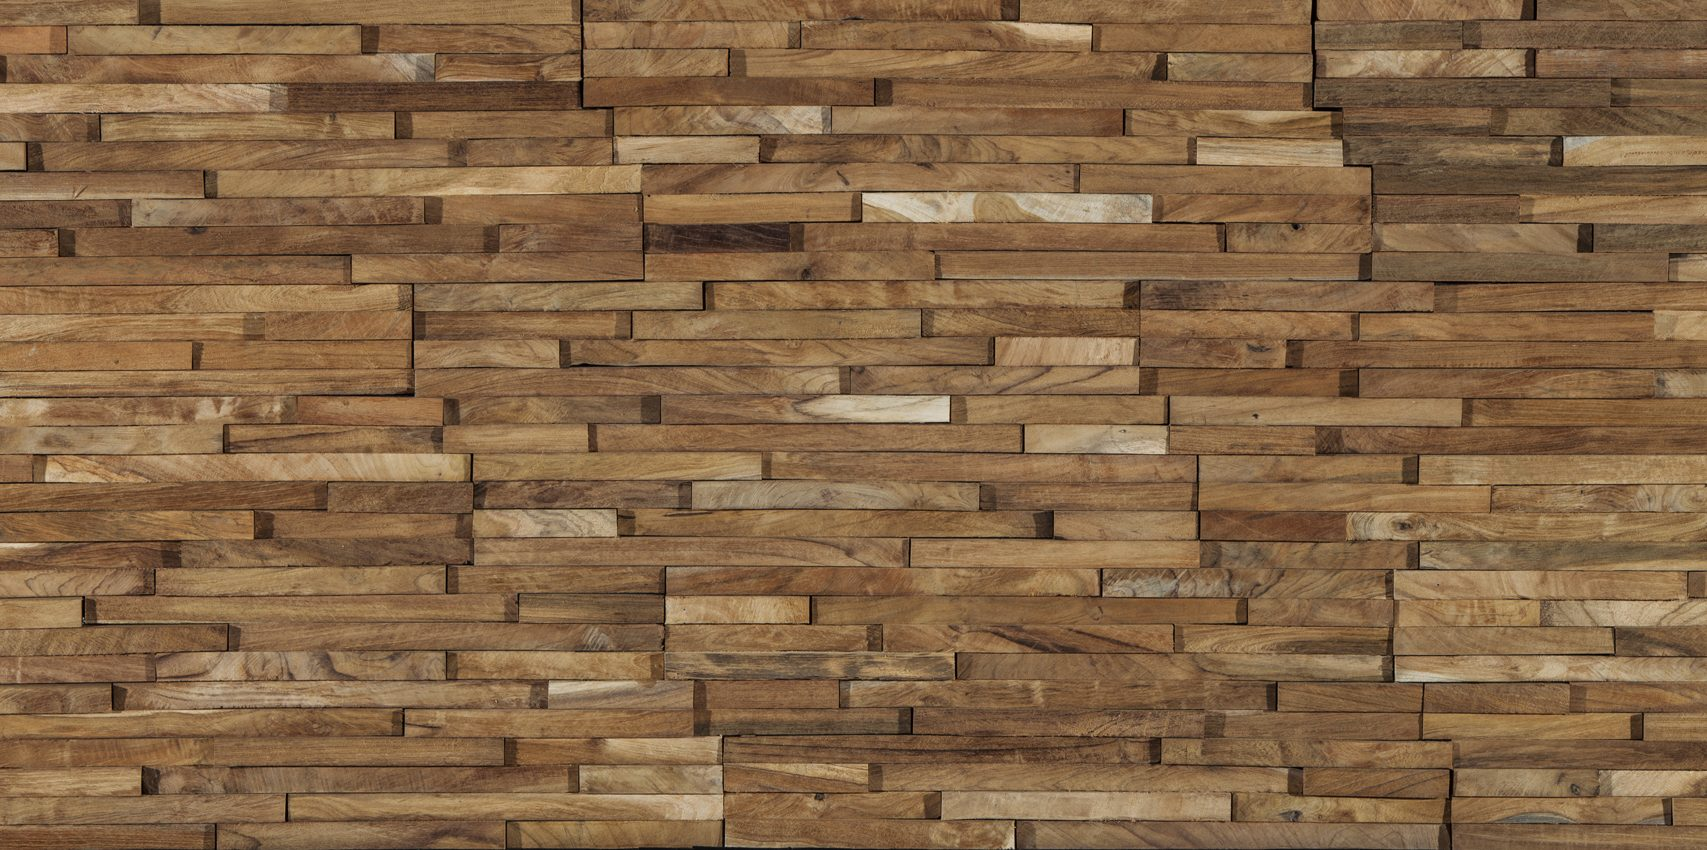 Very Impressive portraiture of  Design / Reclaimed Wood / HRC2026 VERTICAL Solid Teak Cladding Panel with #8A6641 color and 1707x850 pixels